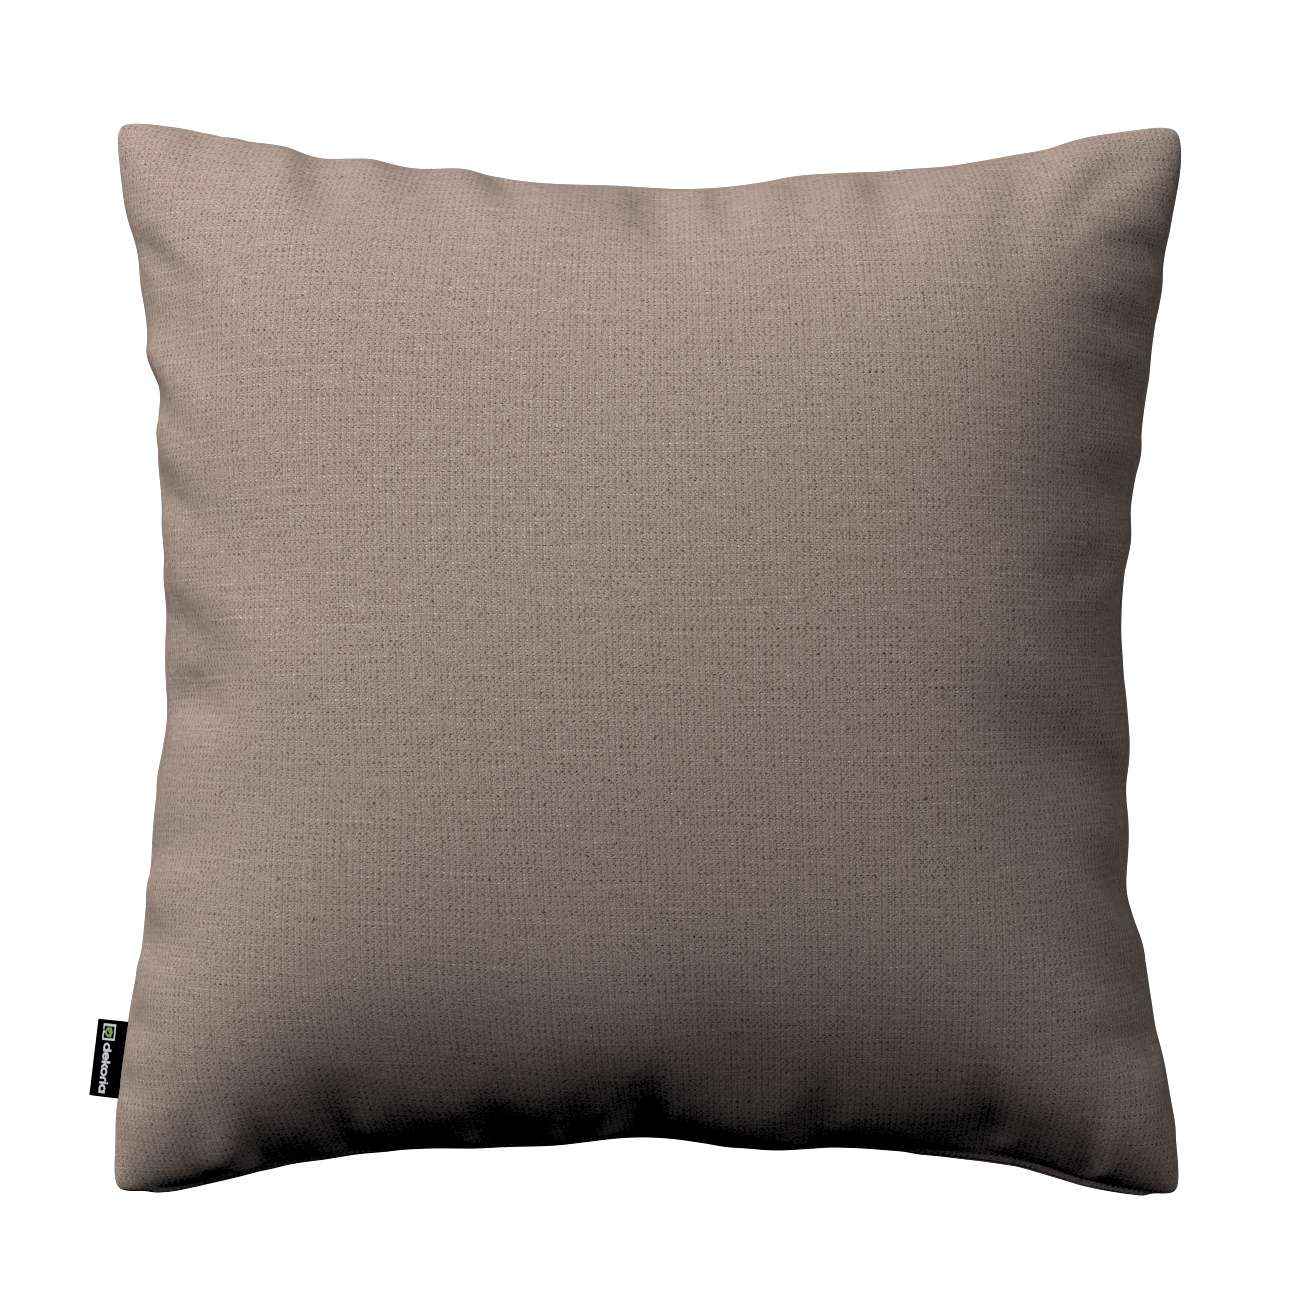 Kinga cushion cover in collection Living, fabric: 160-16